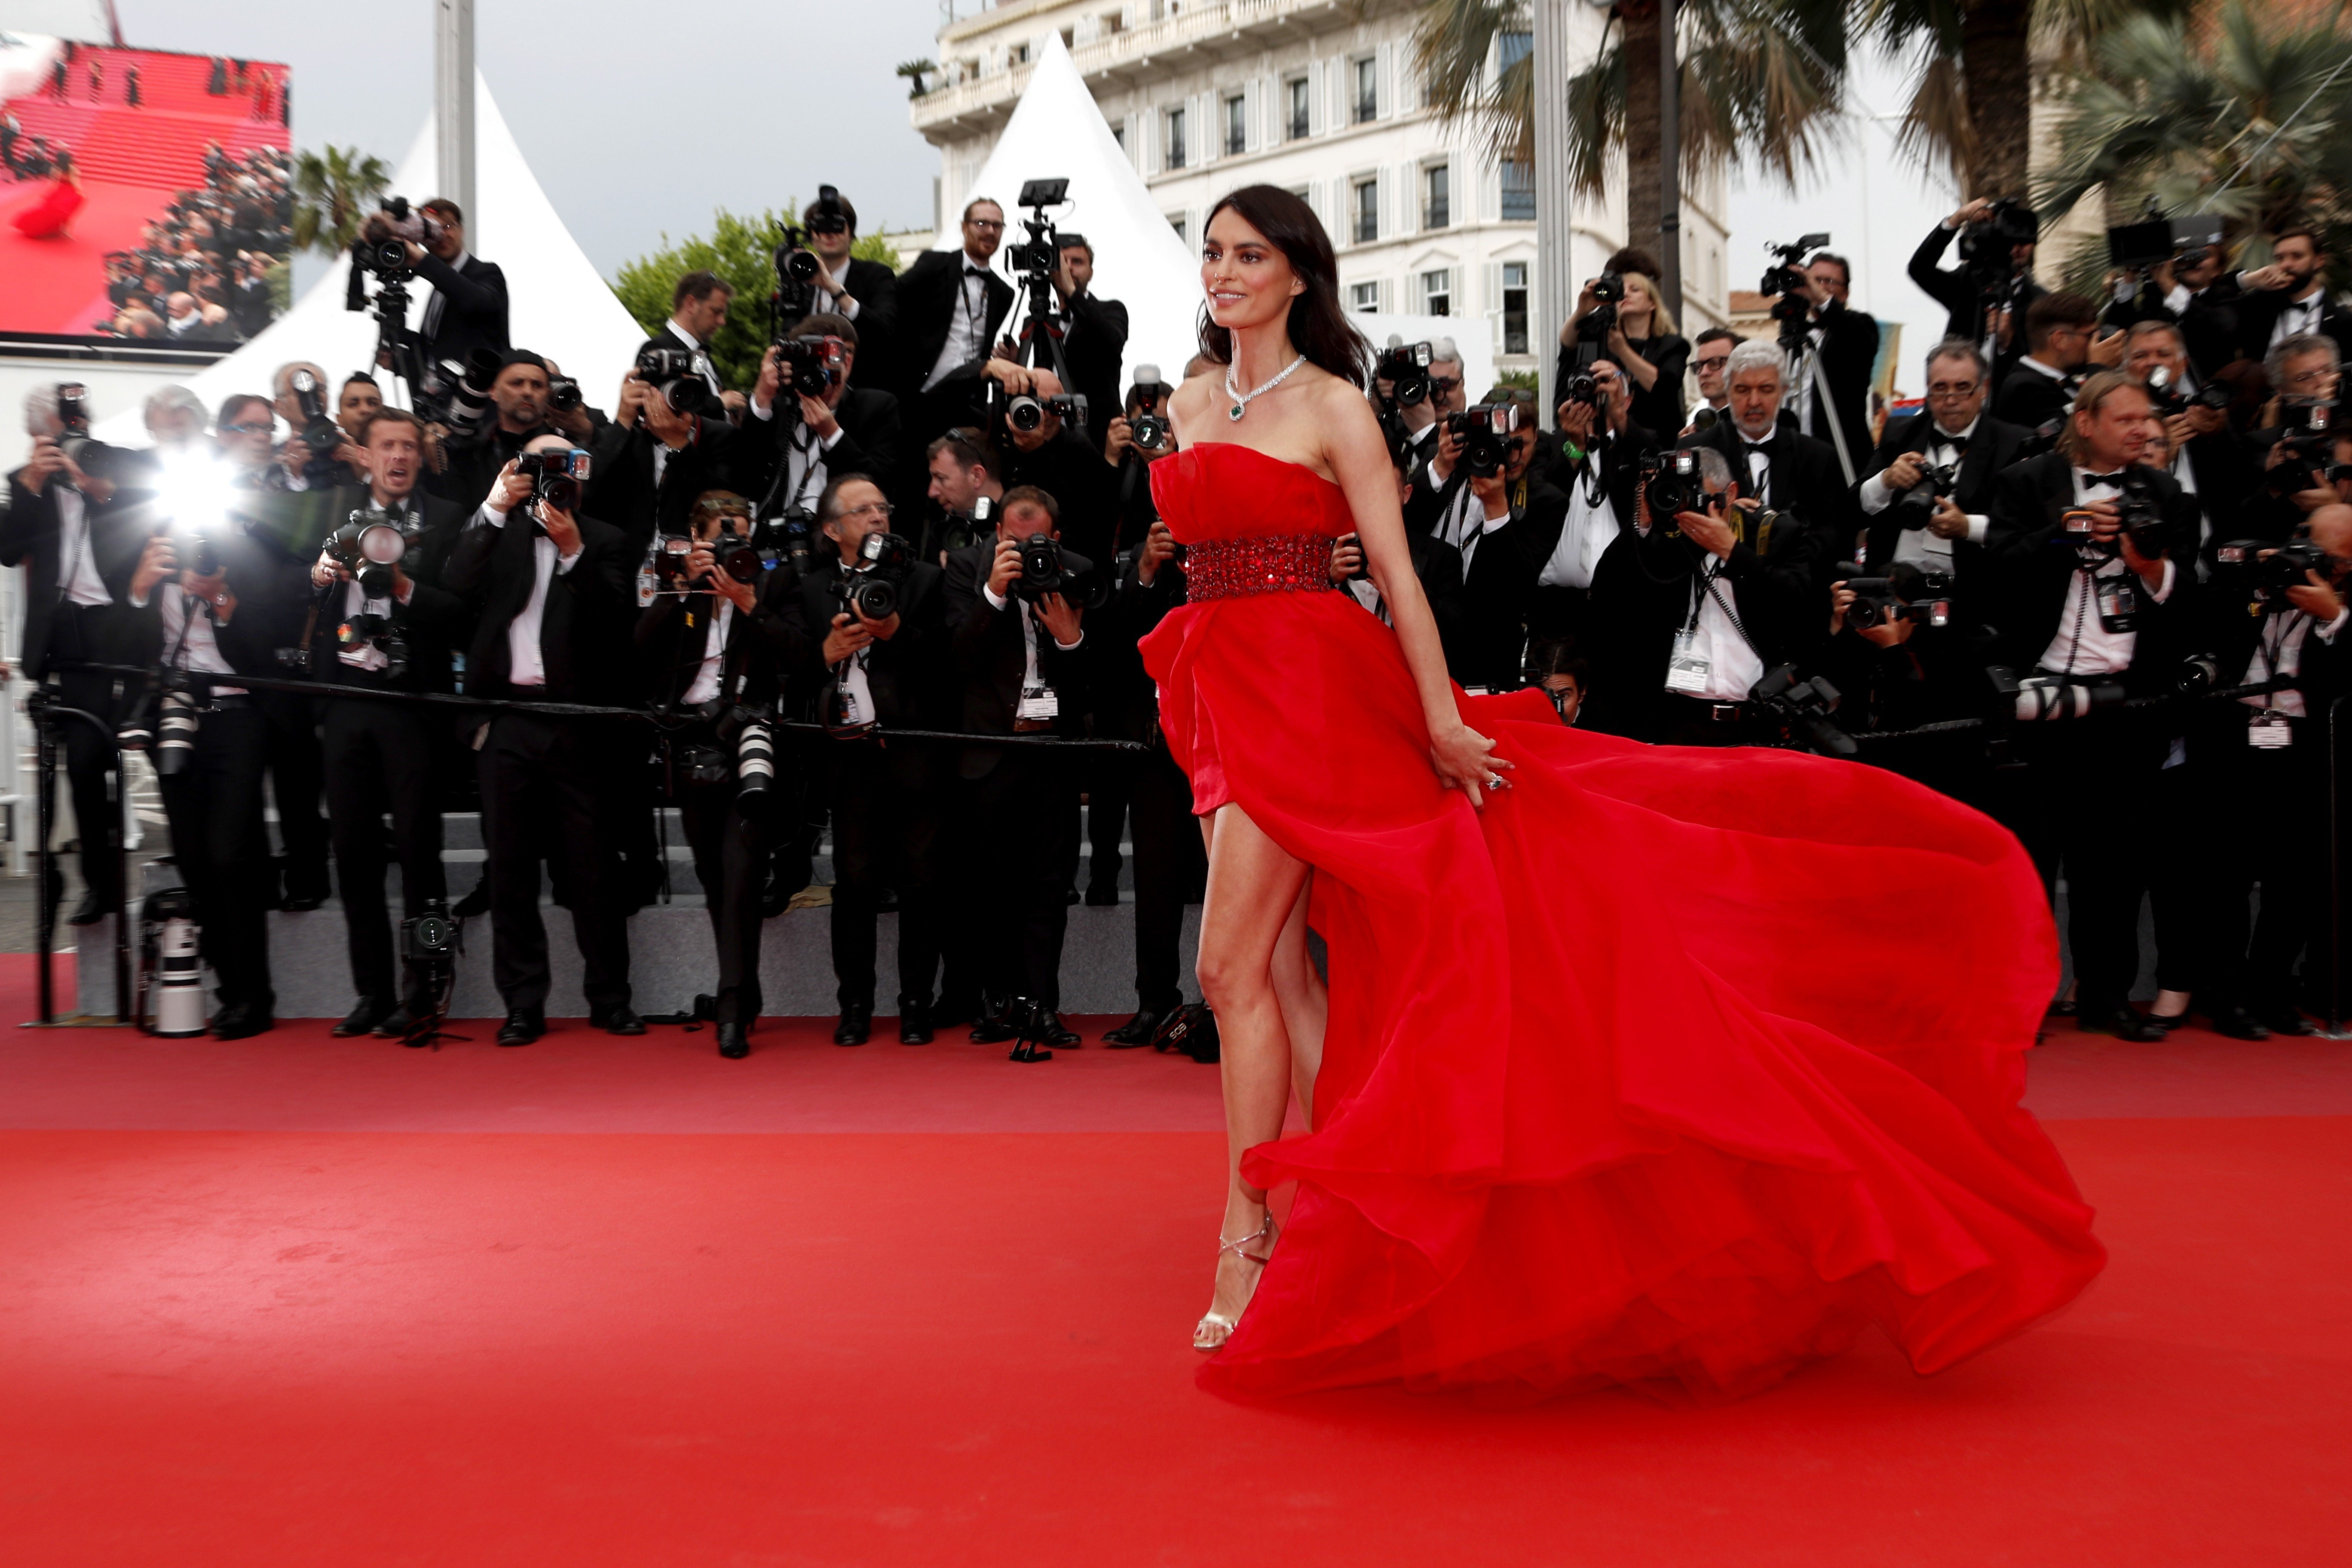 Fashion model Catrinel Menghia is photographed on the red carpet as she  arrives for a film screening at the Cannes Film Festival in France on  Wednesday.